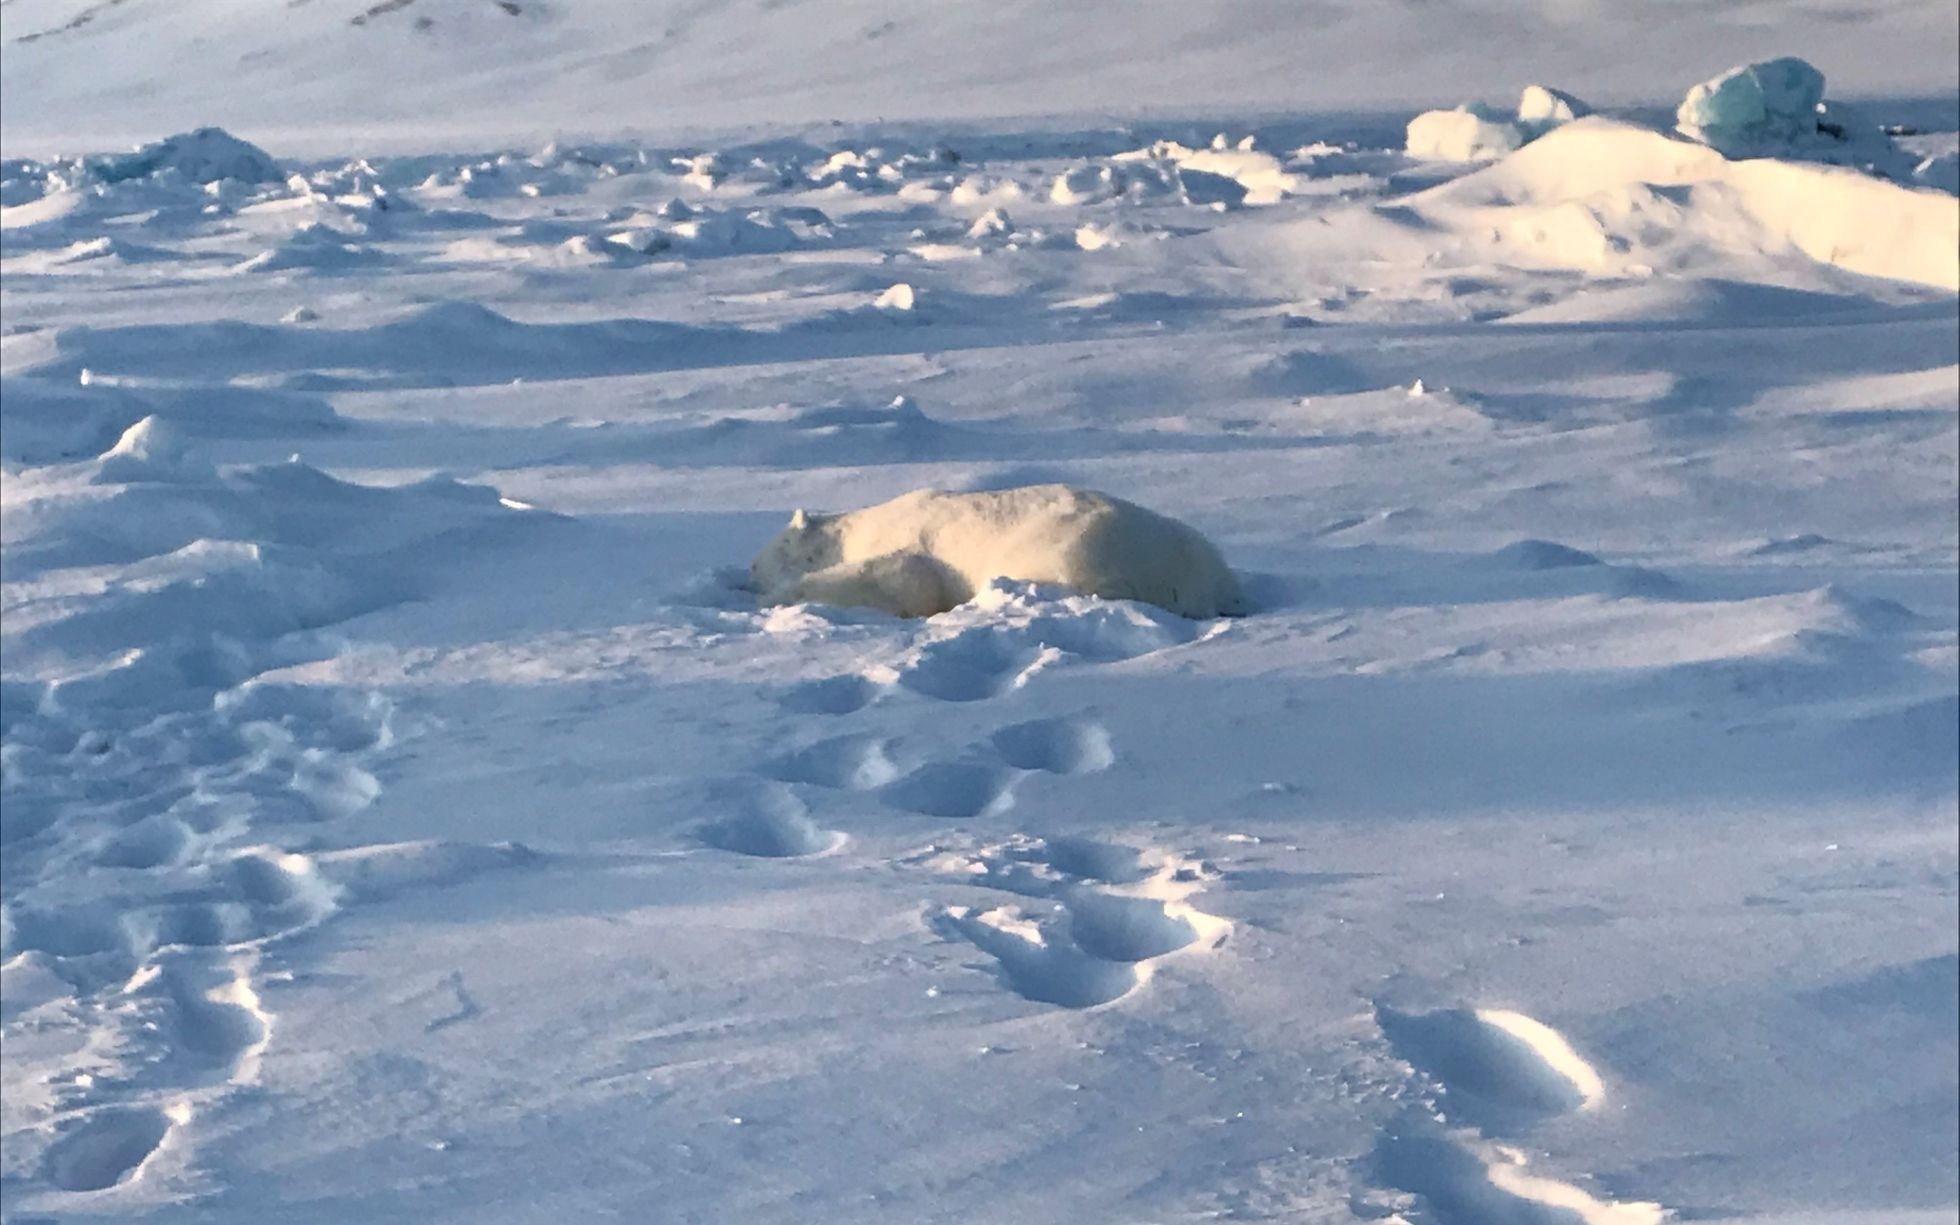 THIN HUNTING: Polar bear that attacked man this week weighed one-third less than normal for its age, expert says